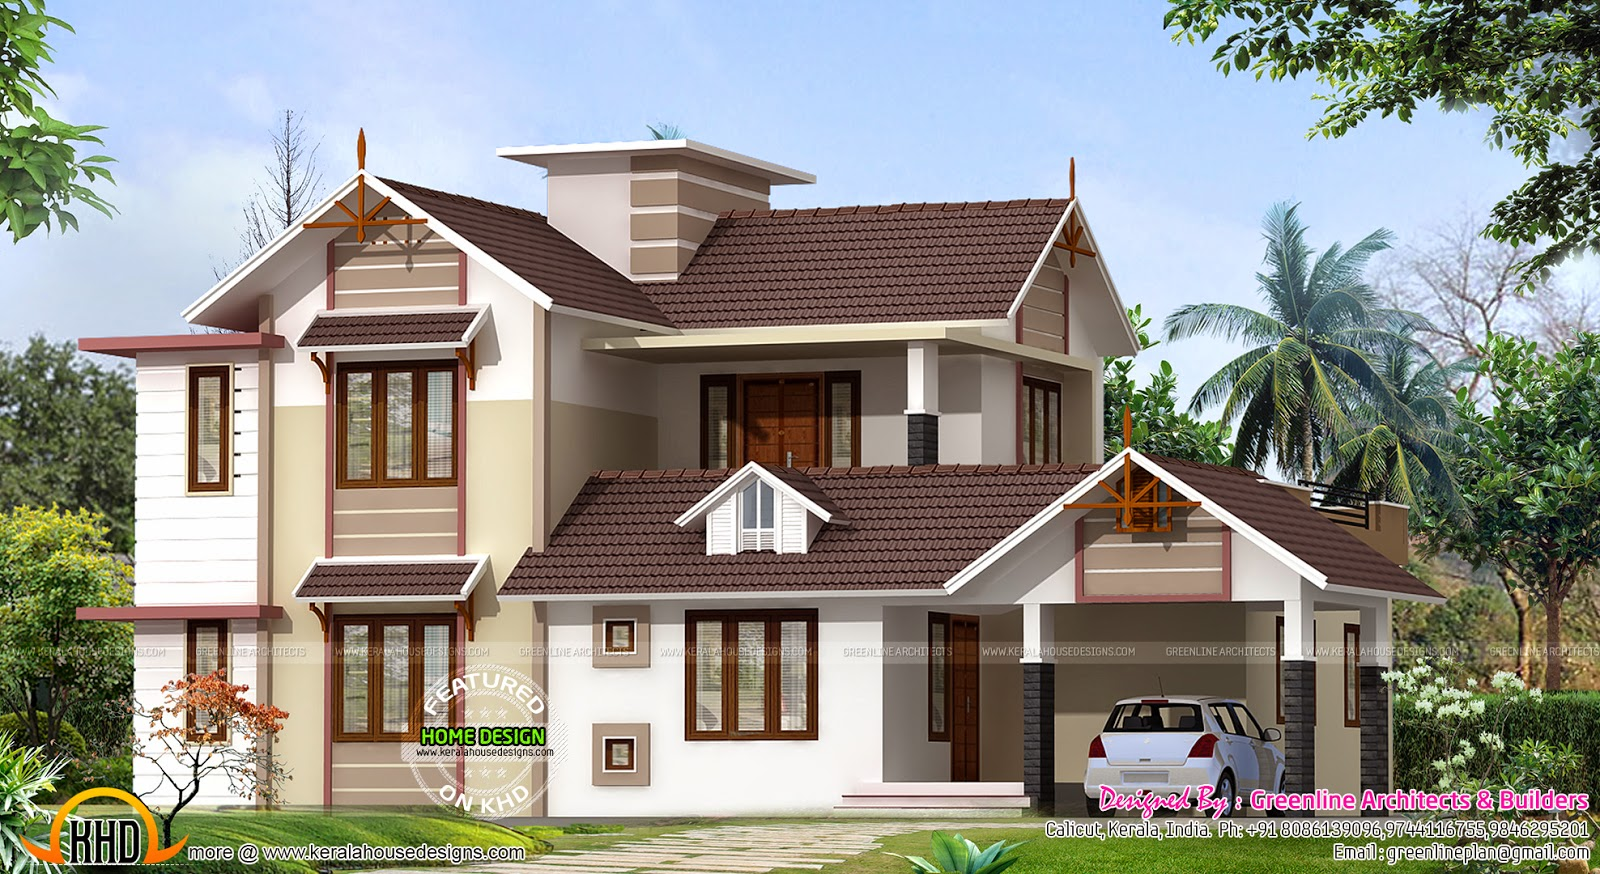 2400 sq ft new house design kerala home design and floor for Design house